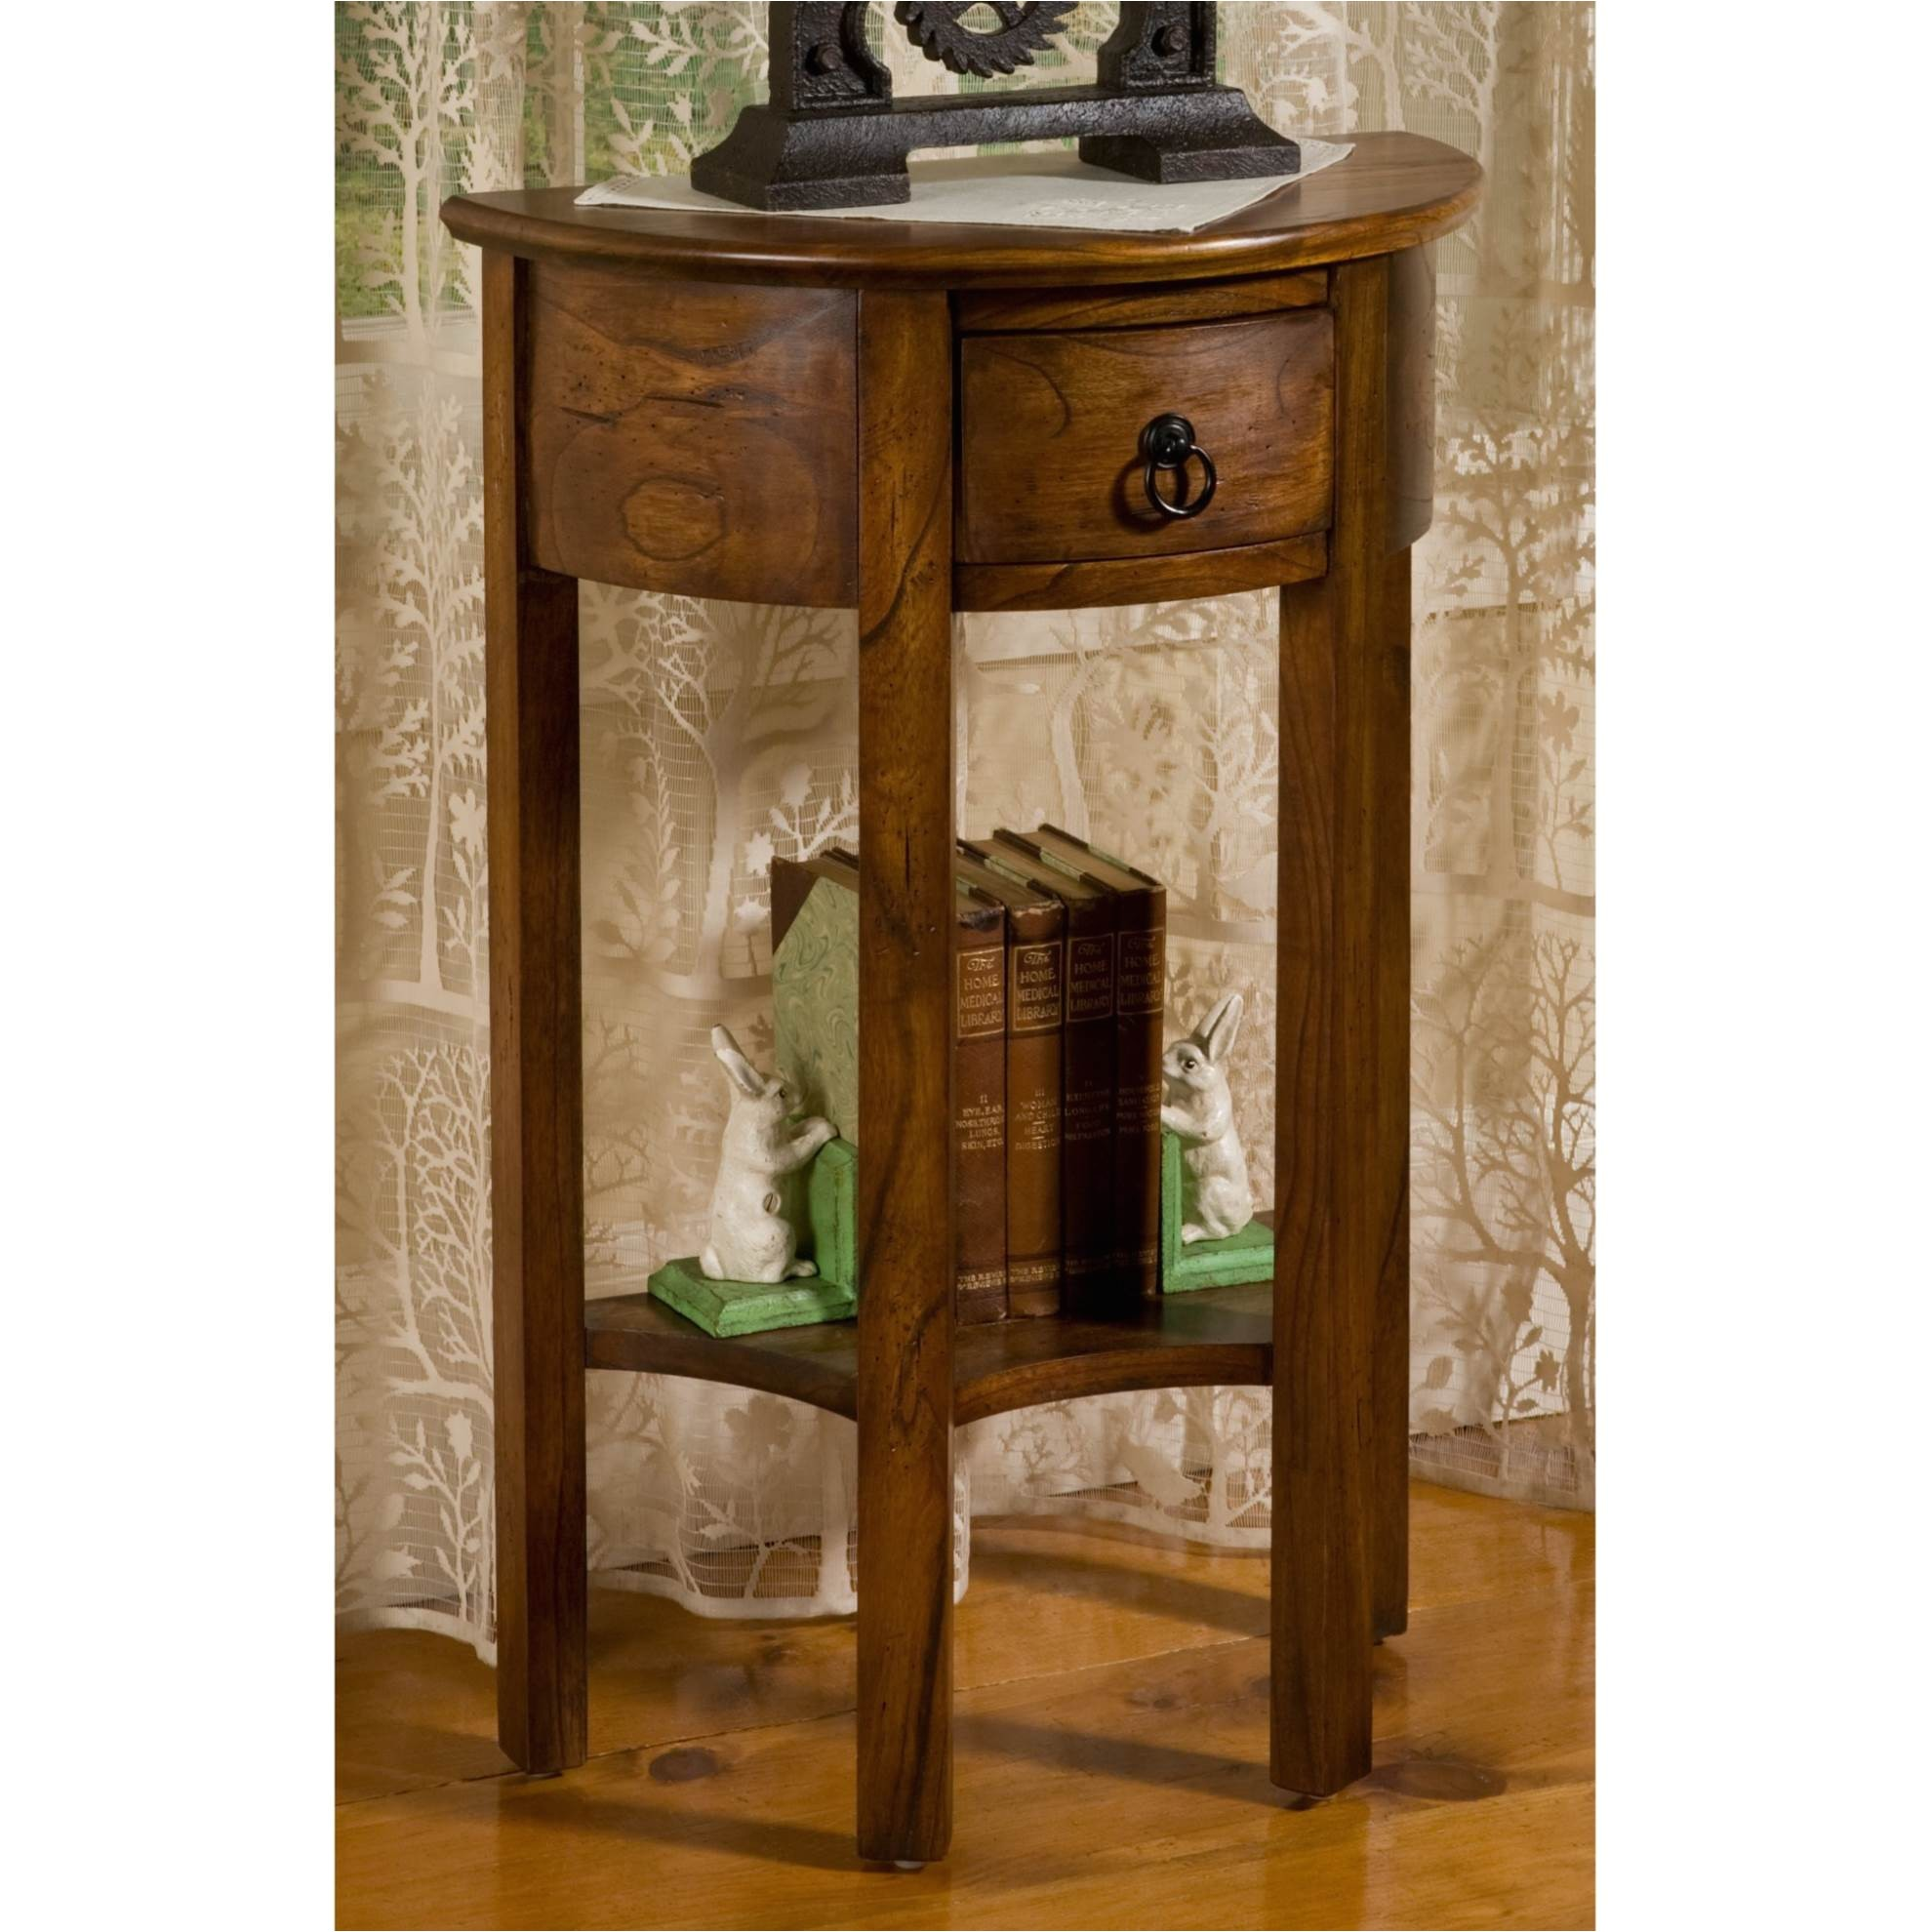 Hobby Lobby Accent Tables Nontraditional Uses for Accent Tables In the Home